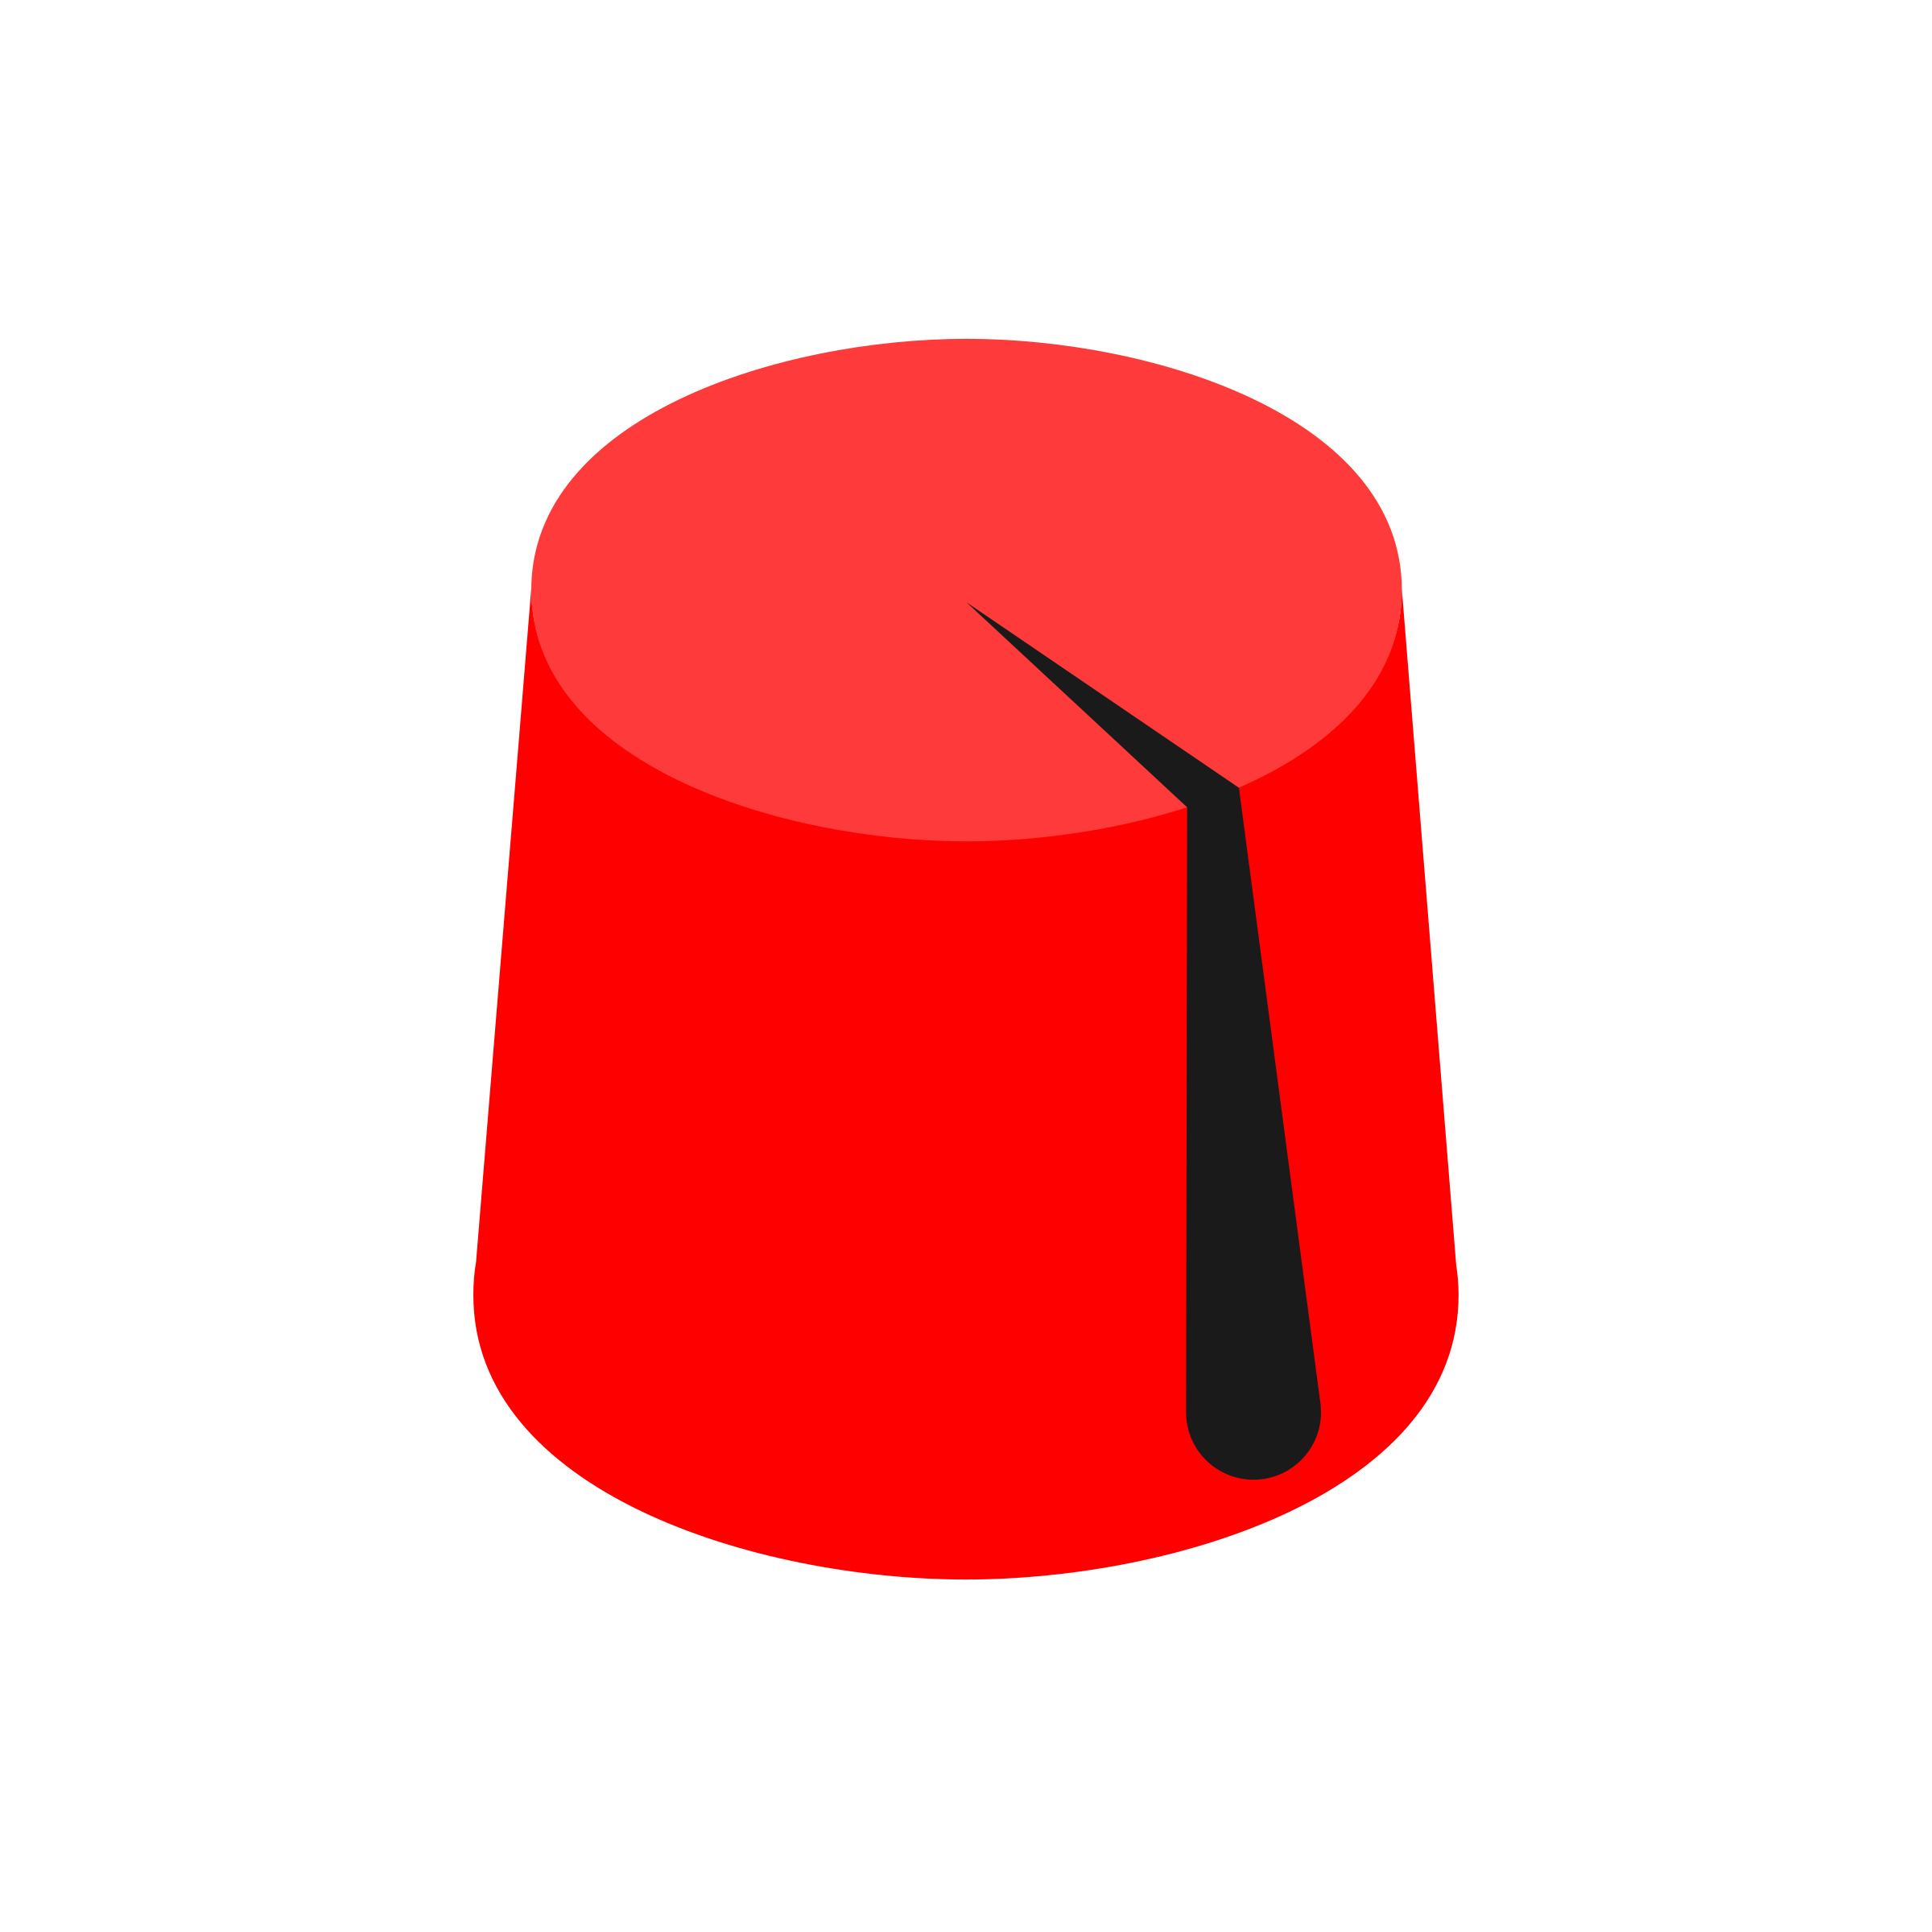 clipart fez Free Clip Art for Teachers email icon clipart free